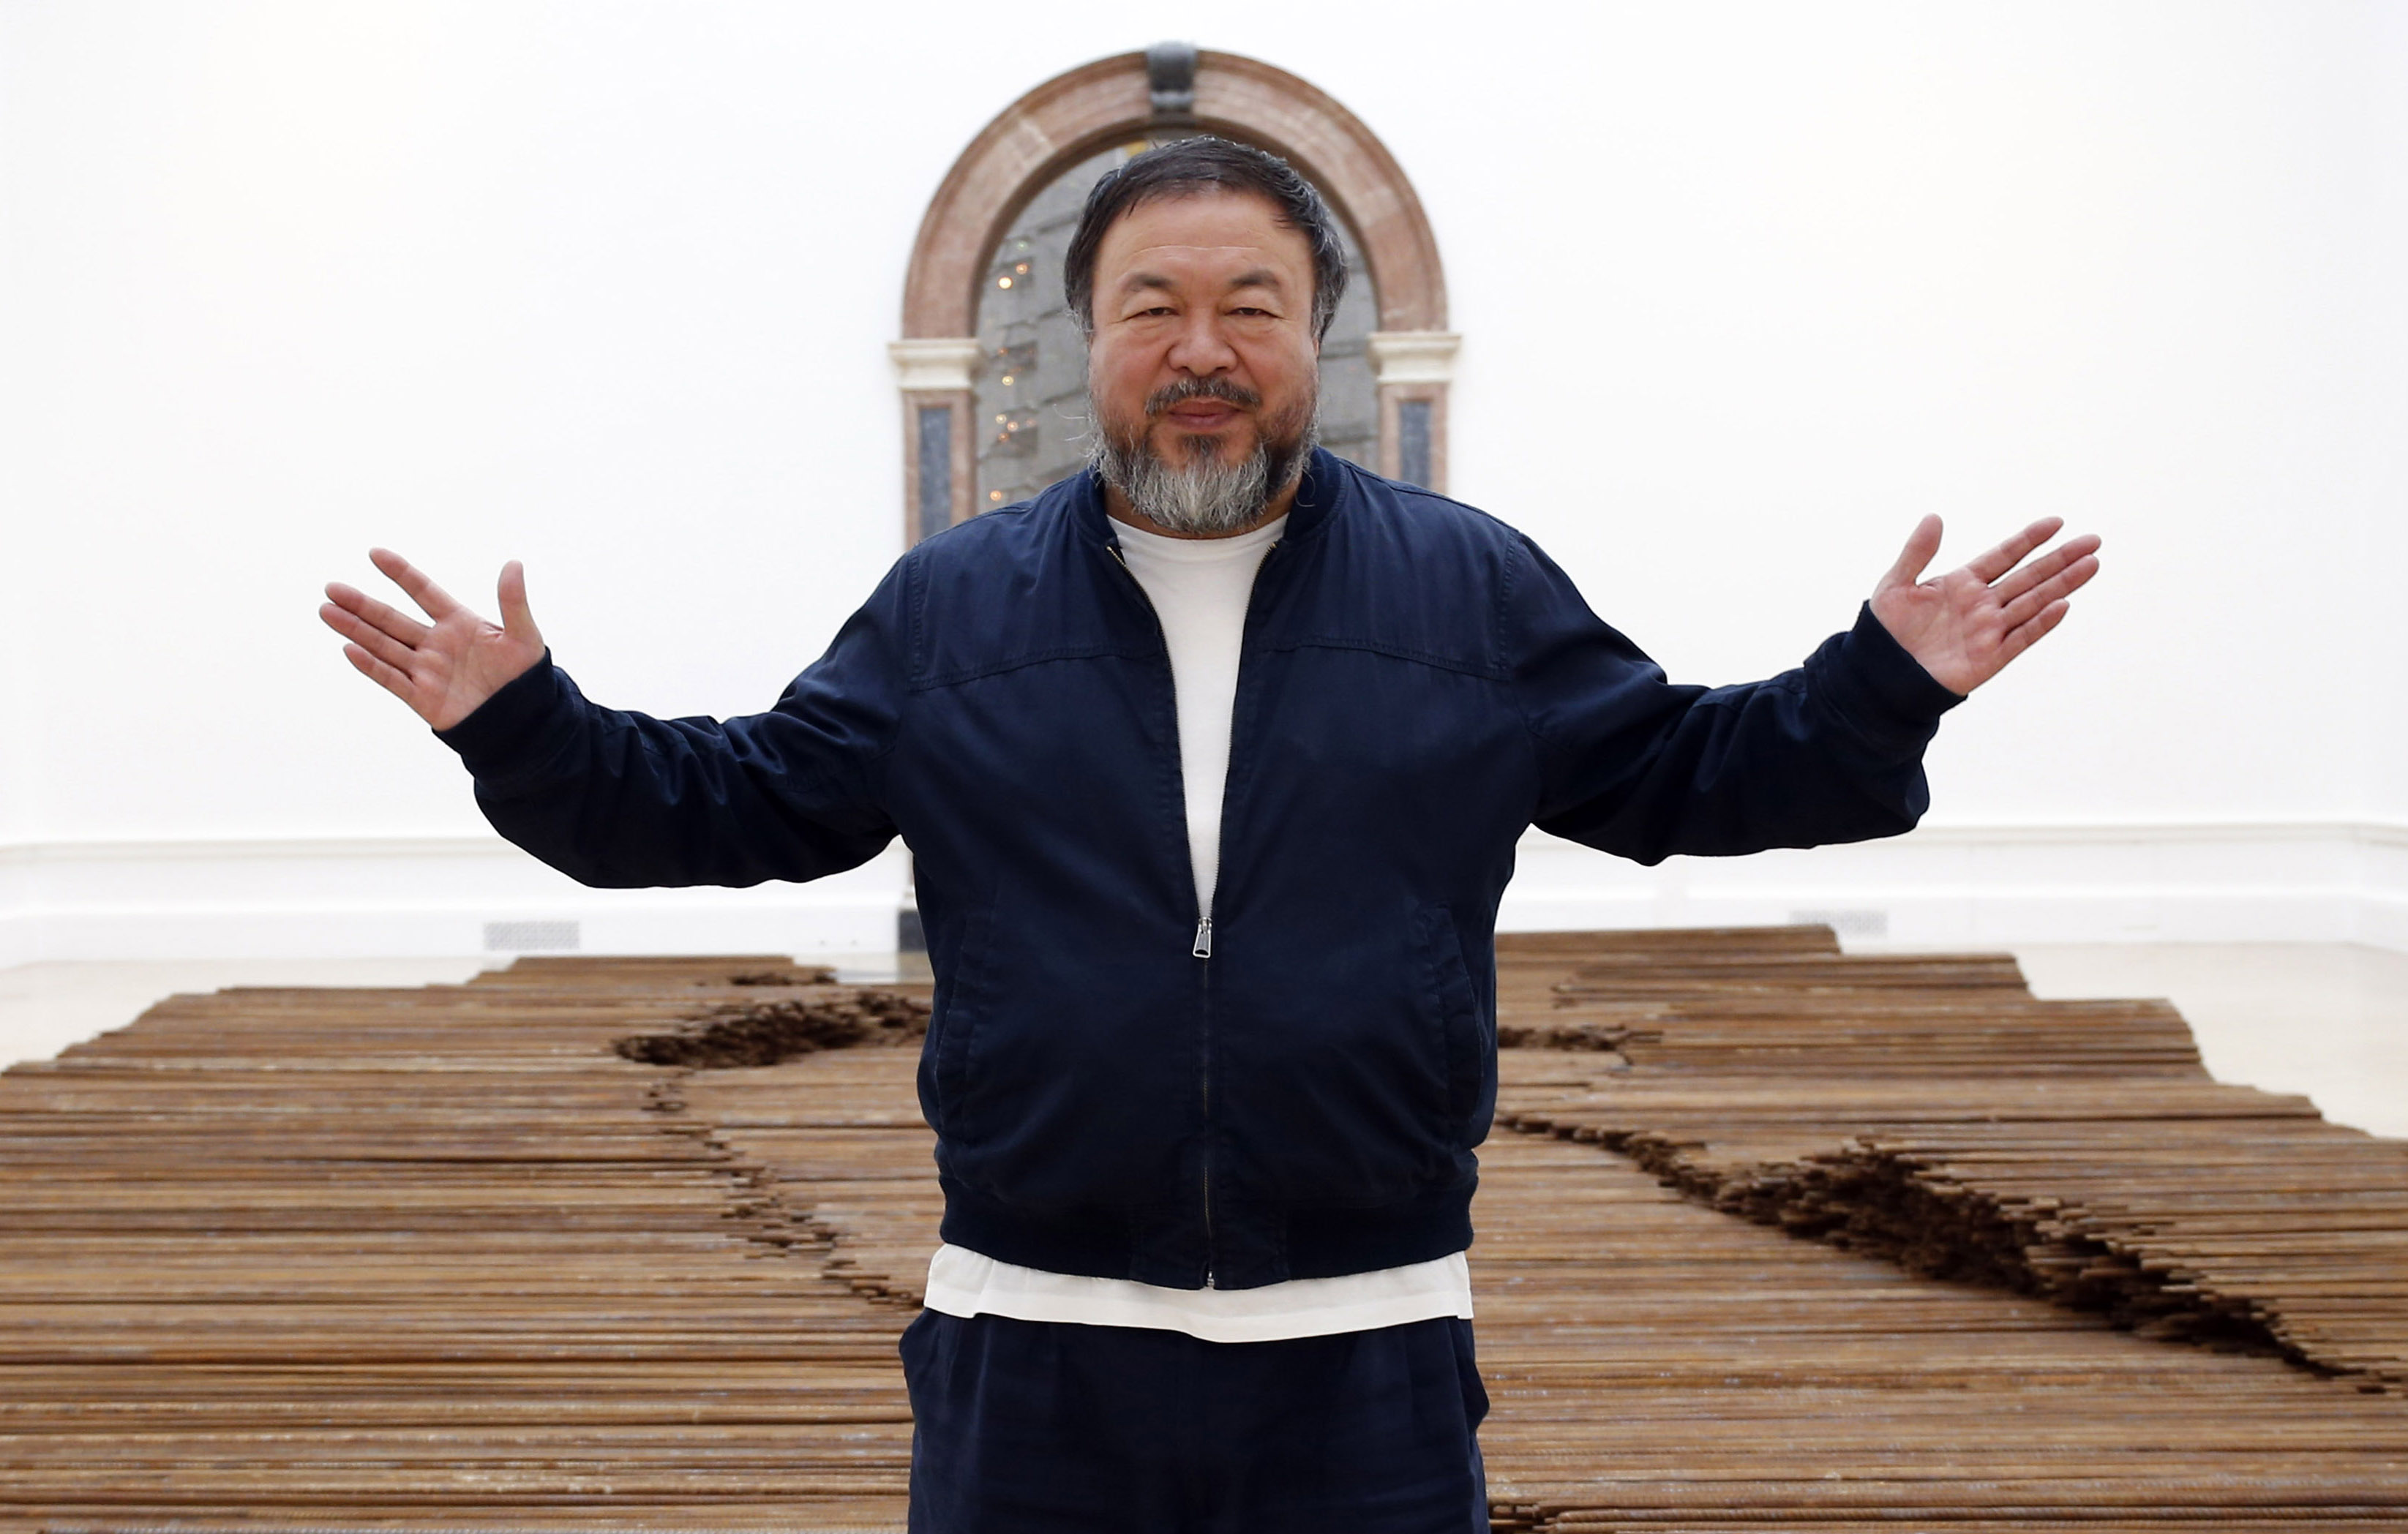 Ai Weiwei stands with his sculpture 'Straight' as he previews works from his landmark art exhibition in London on Sept. 15, 2015.